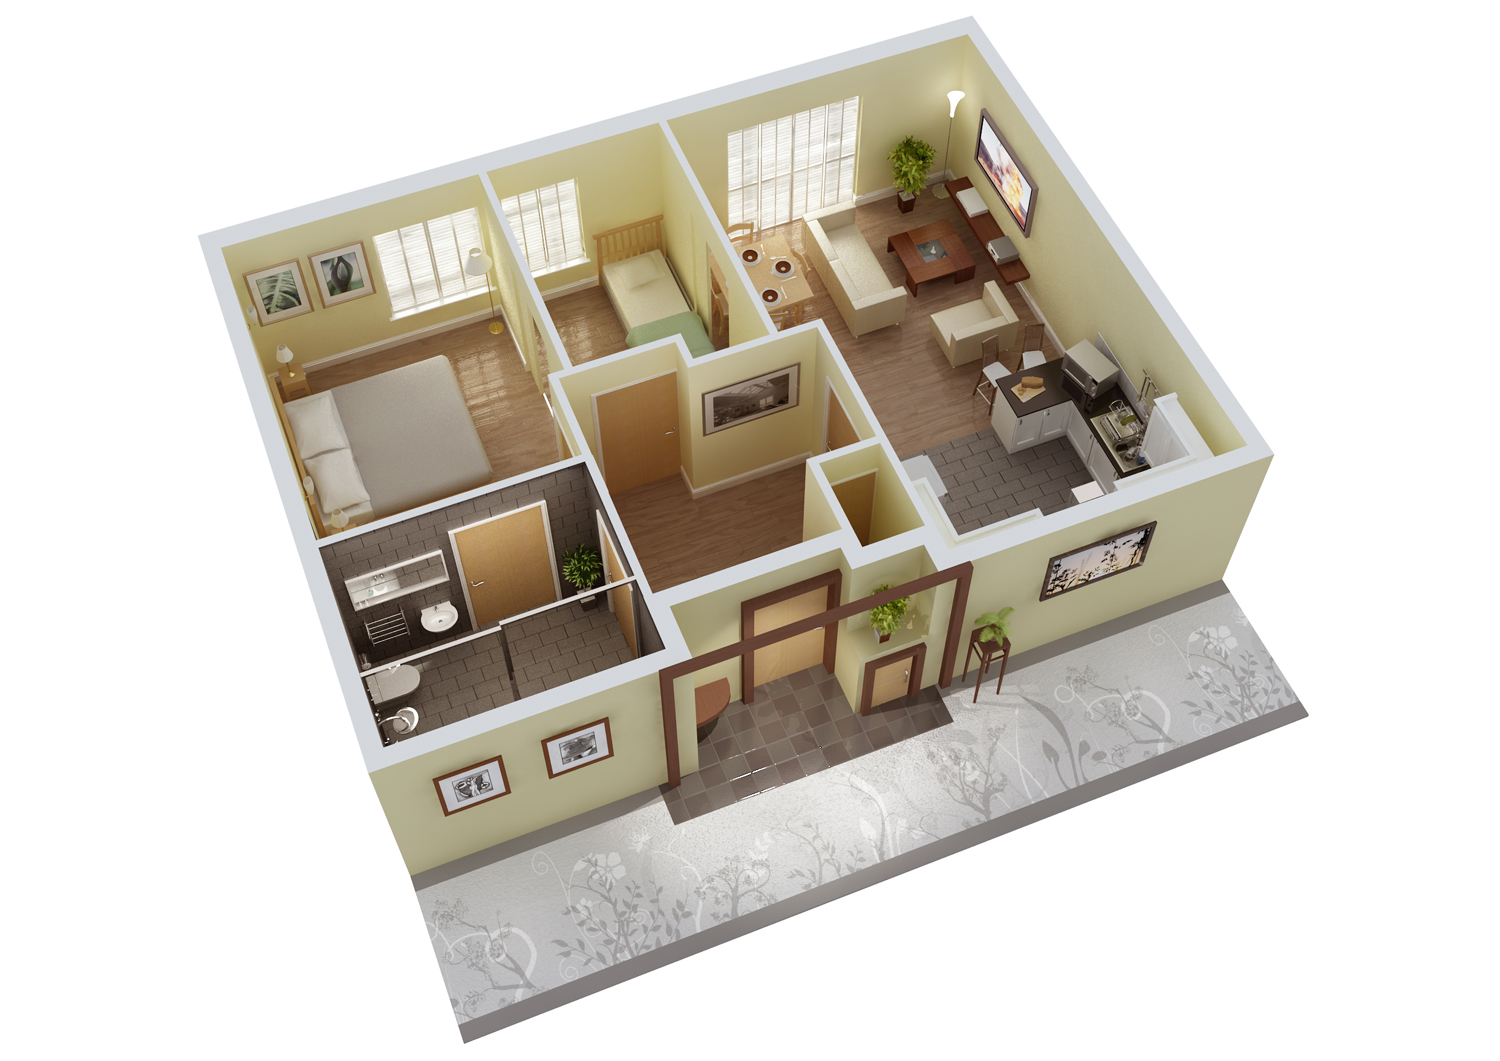 Mathematics resources project 3d floor plan Home design 3d